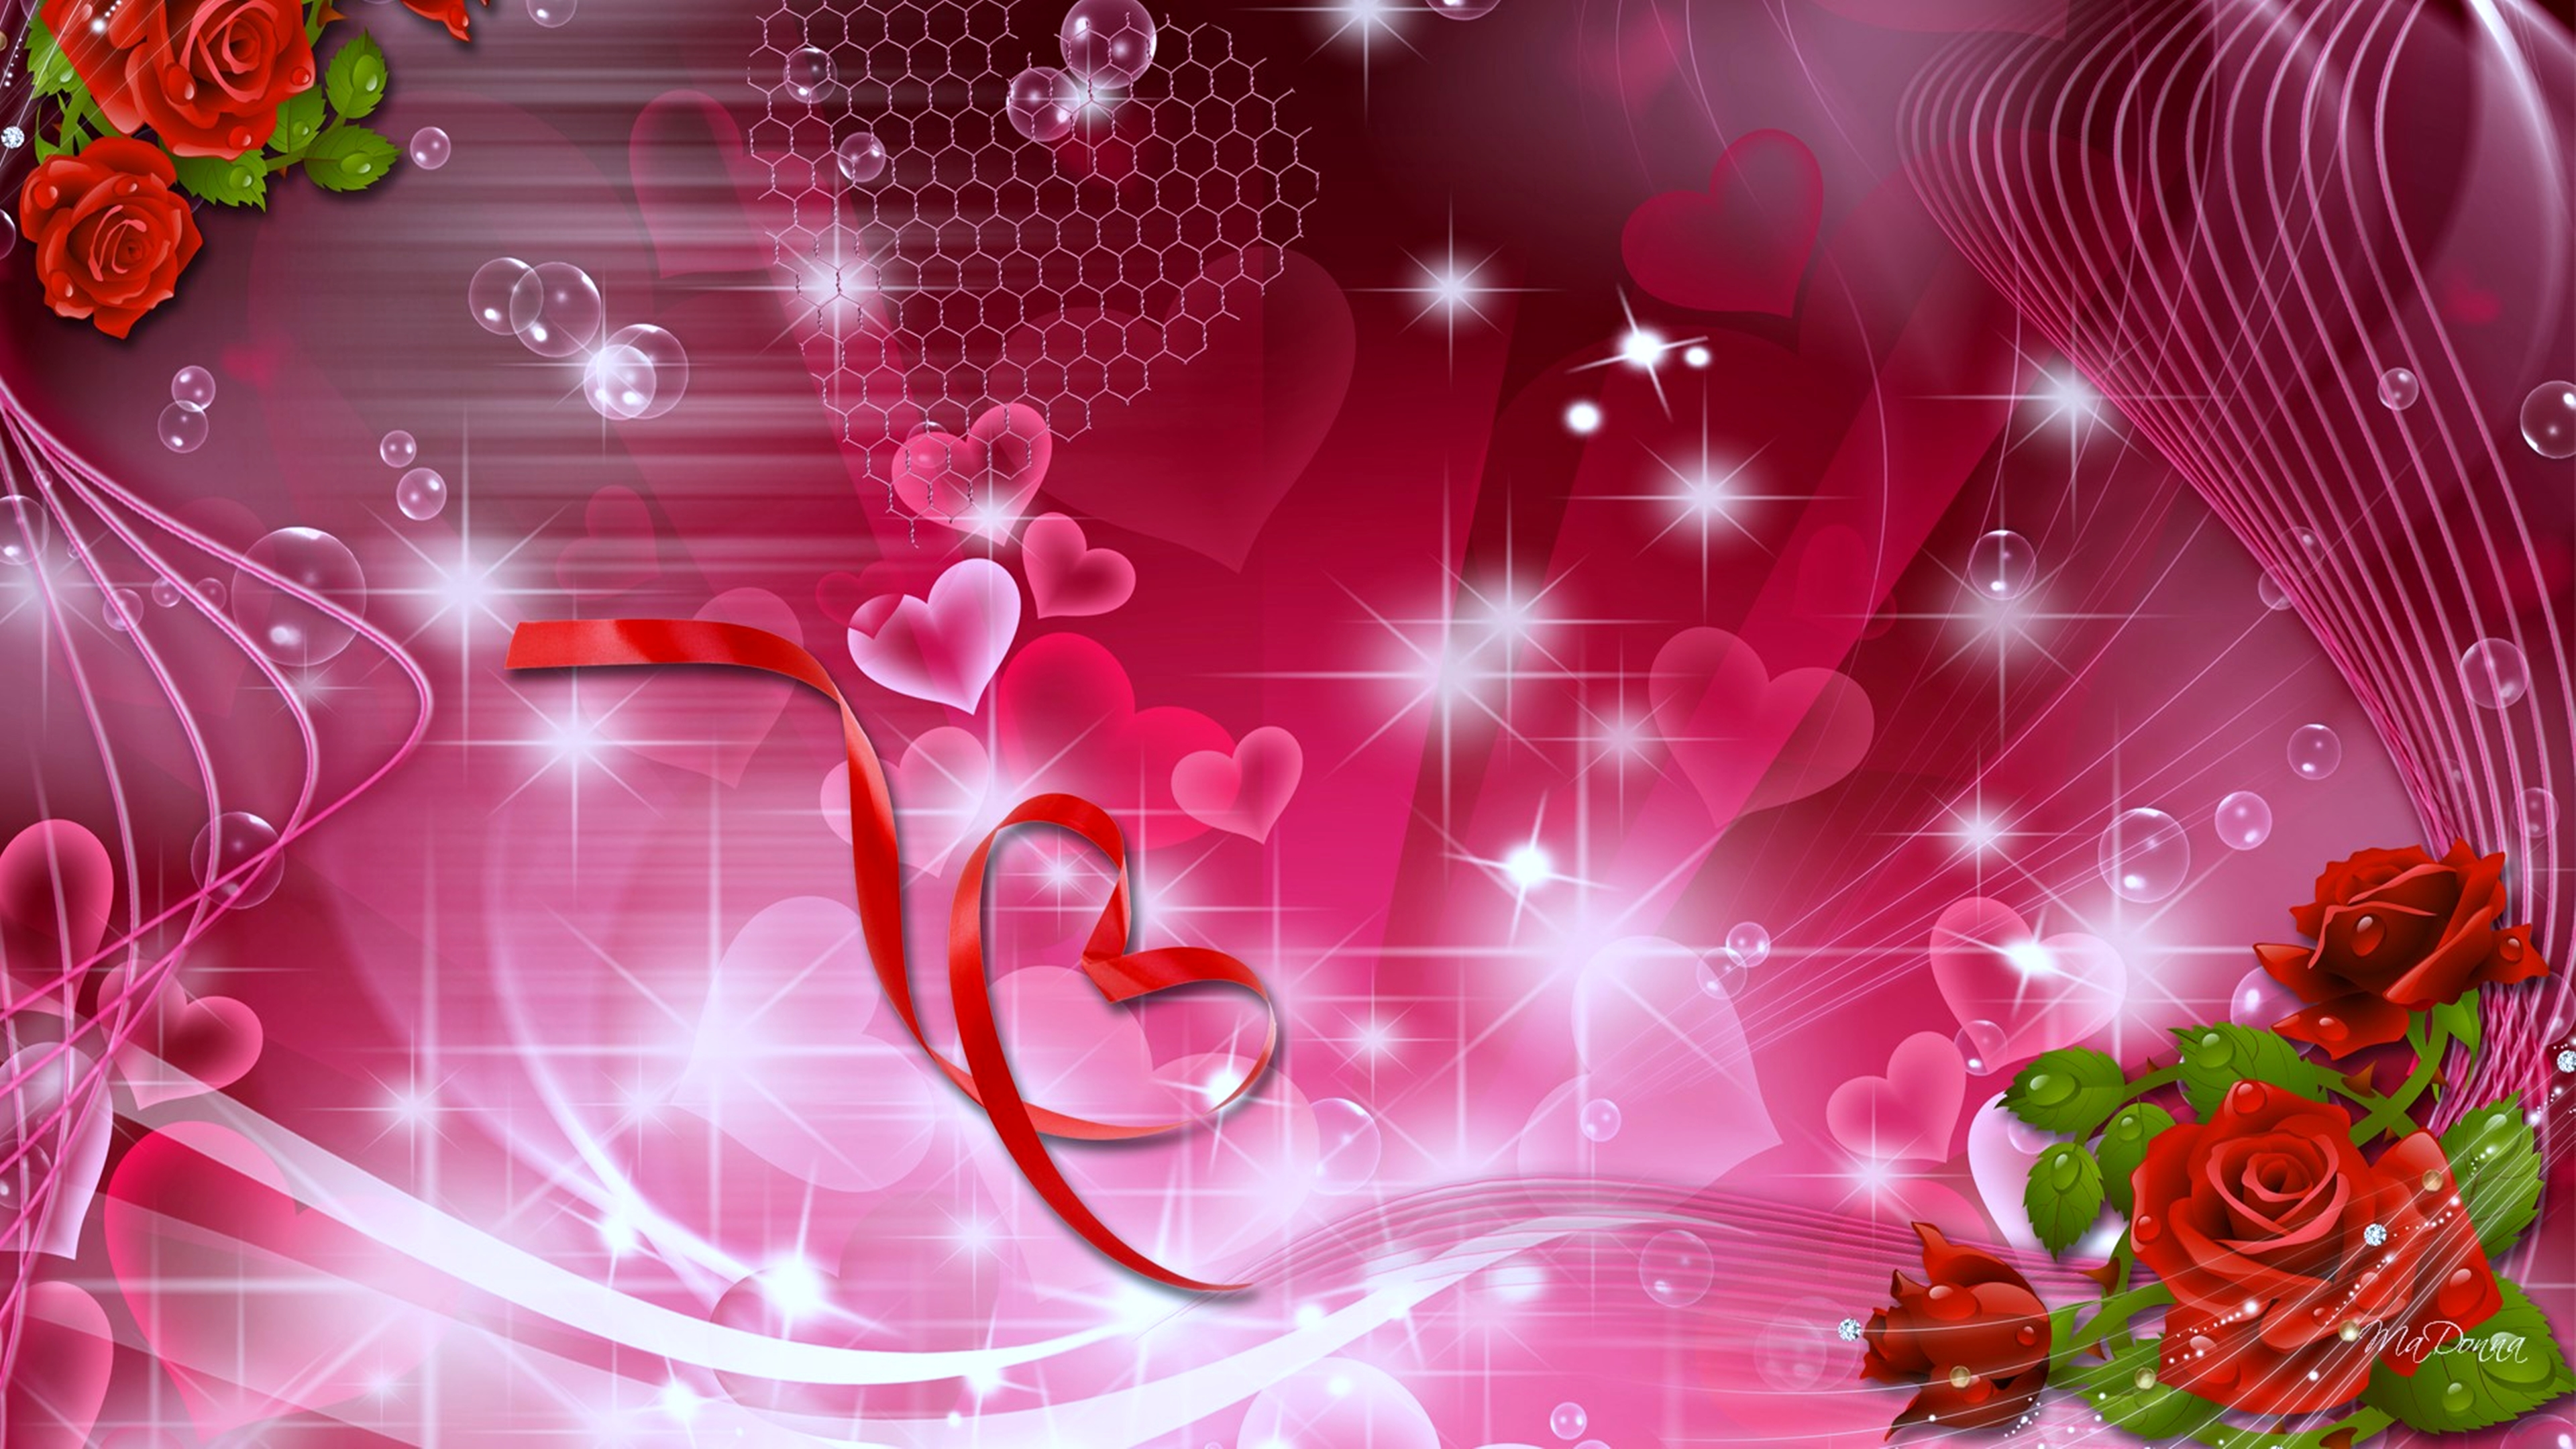 Love Wallpapers Editing : Love Backgrounds, Pictures, Images